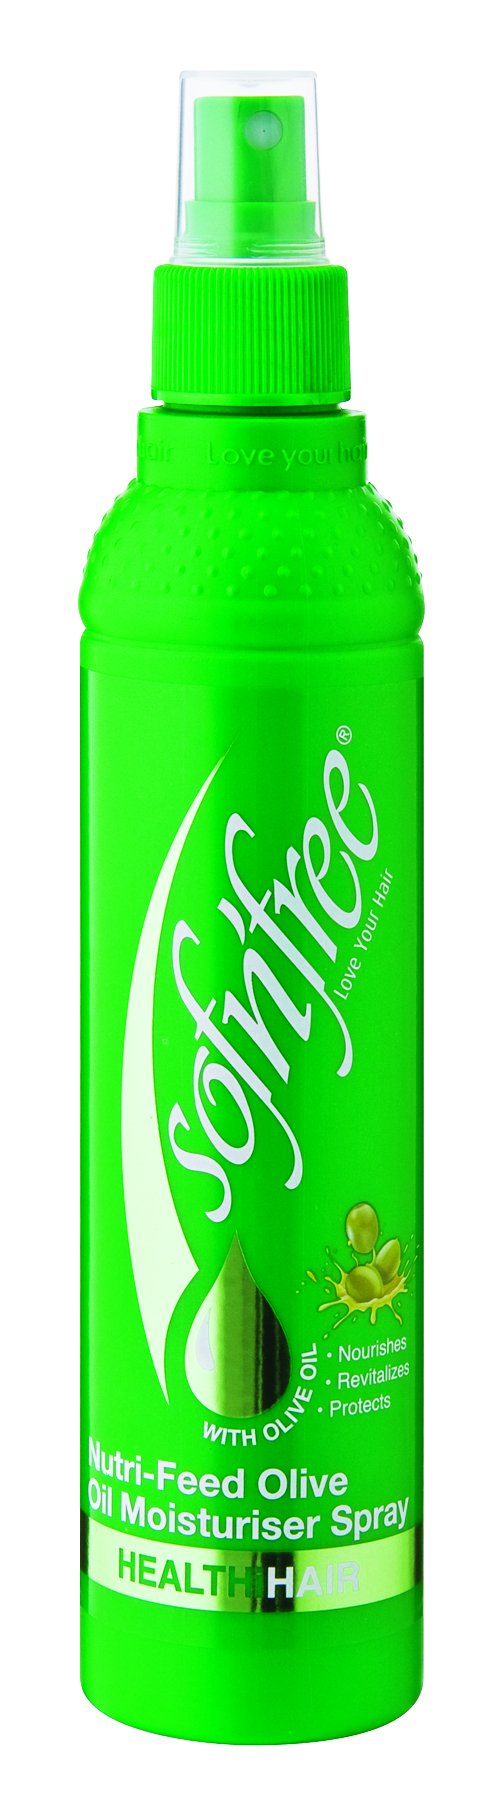 Sofnfree nutri-feed oil moisturiser spray 250ml  12-Pack